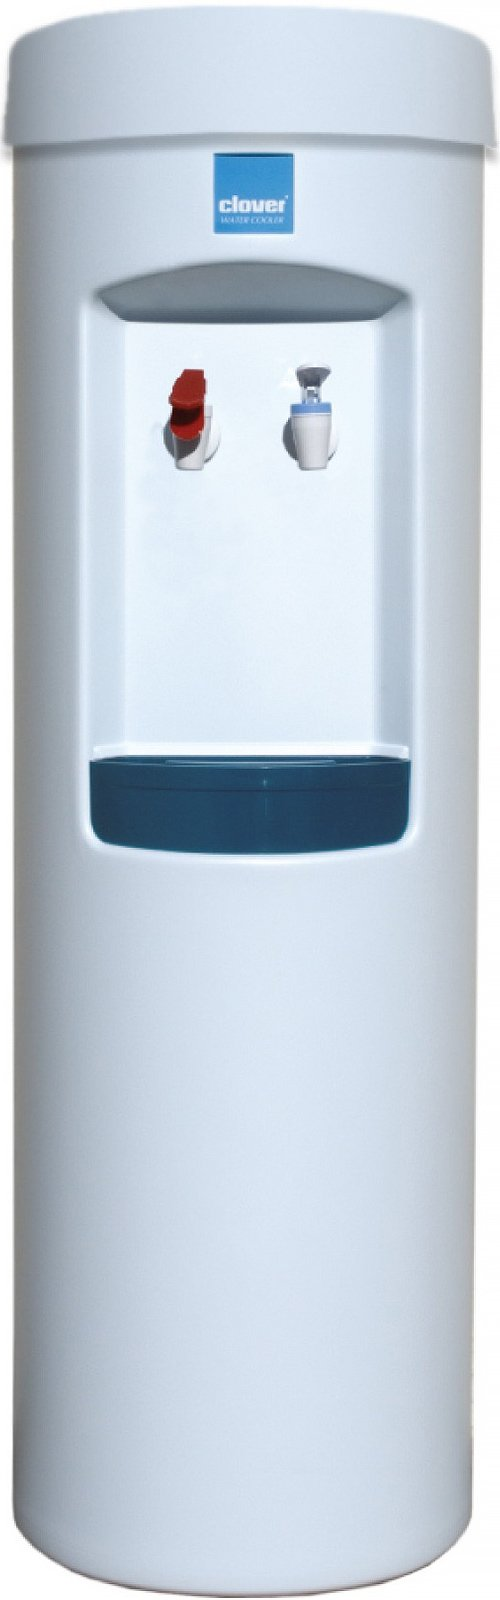 clover-d7a-hot-and-cold-water-dispenser-white